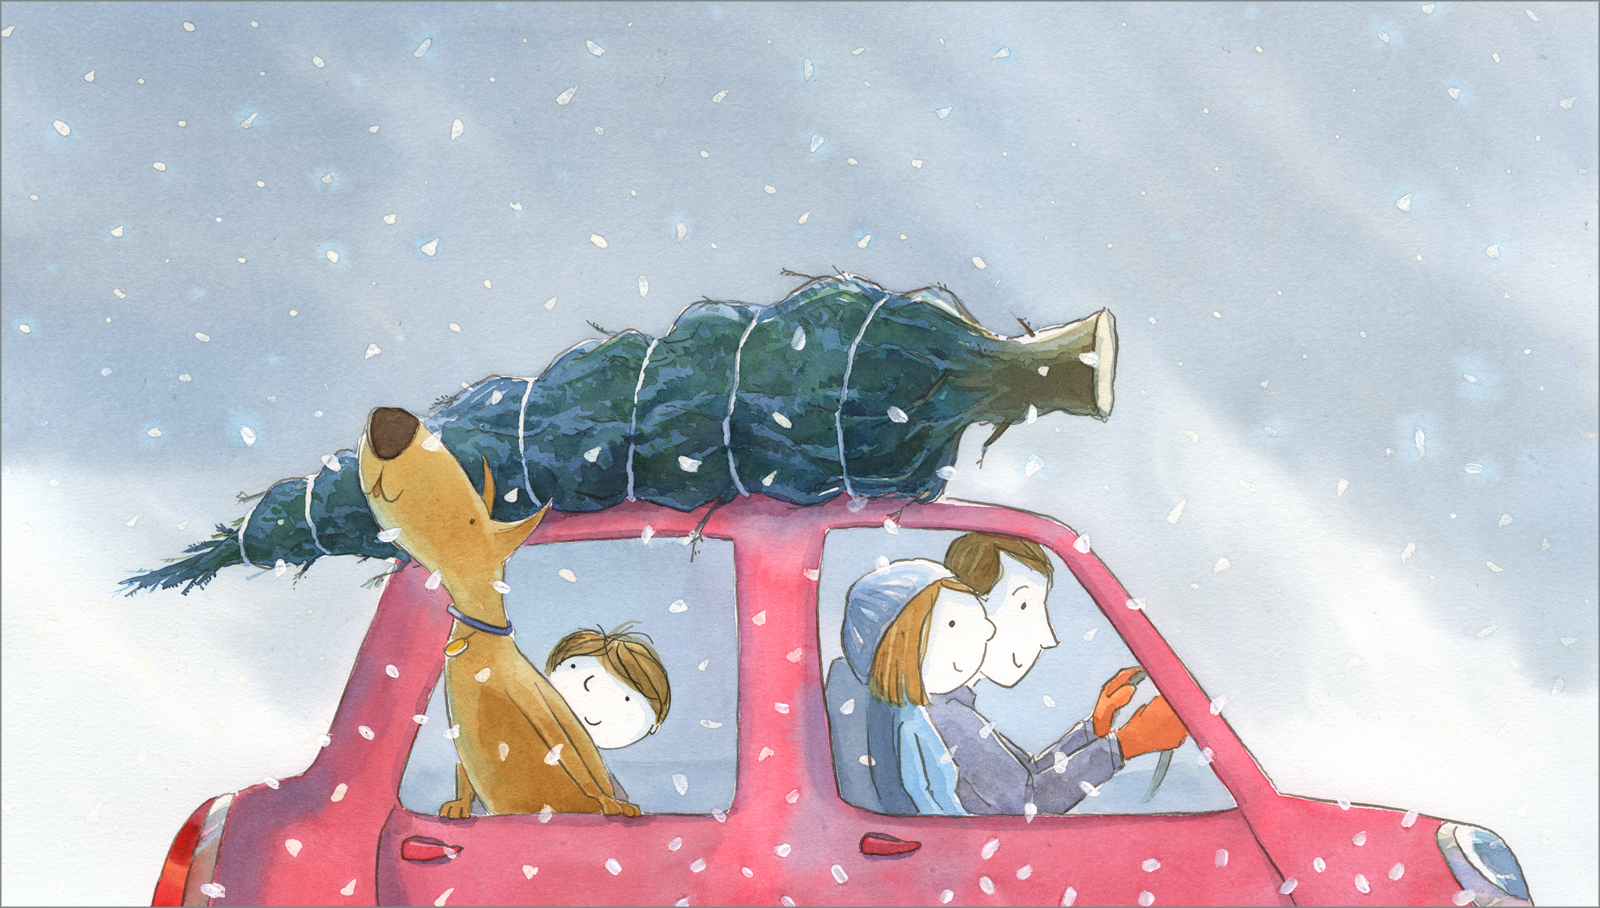 Christmas Illustration.The Best Parts Of Christmas Bethanie Murguia Author And